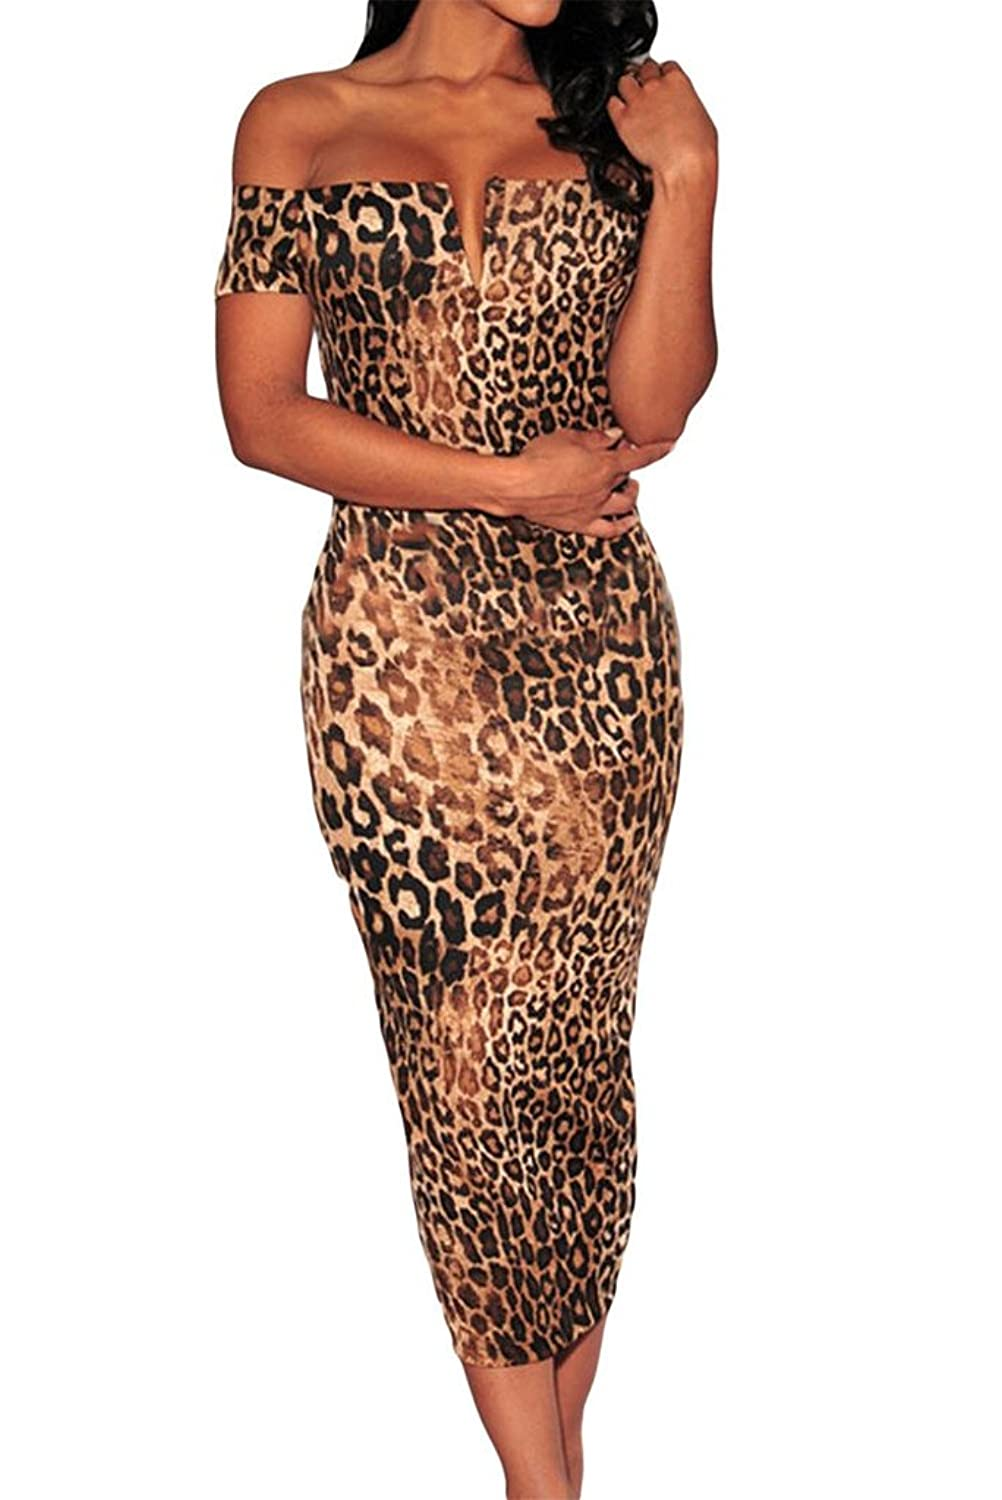 Happy Sailed Women's Leopard Print Off-the-shoulder Midi Dress